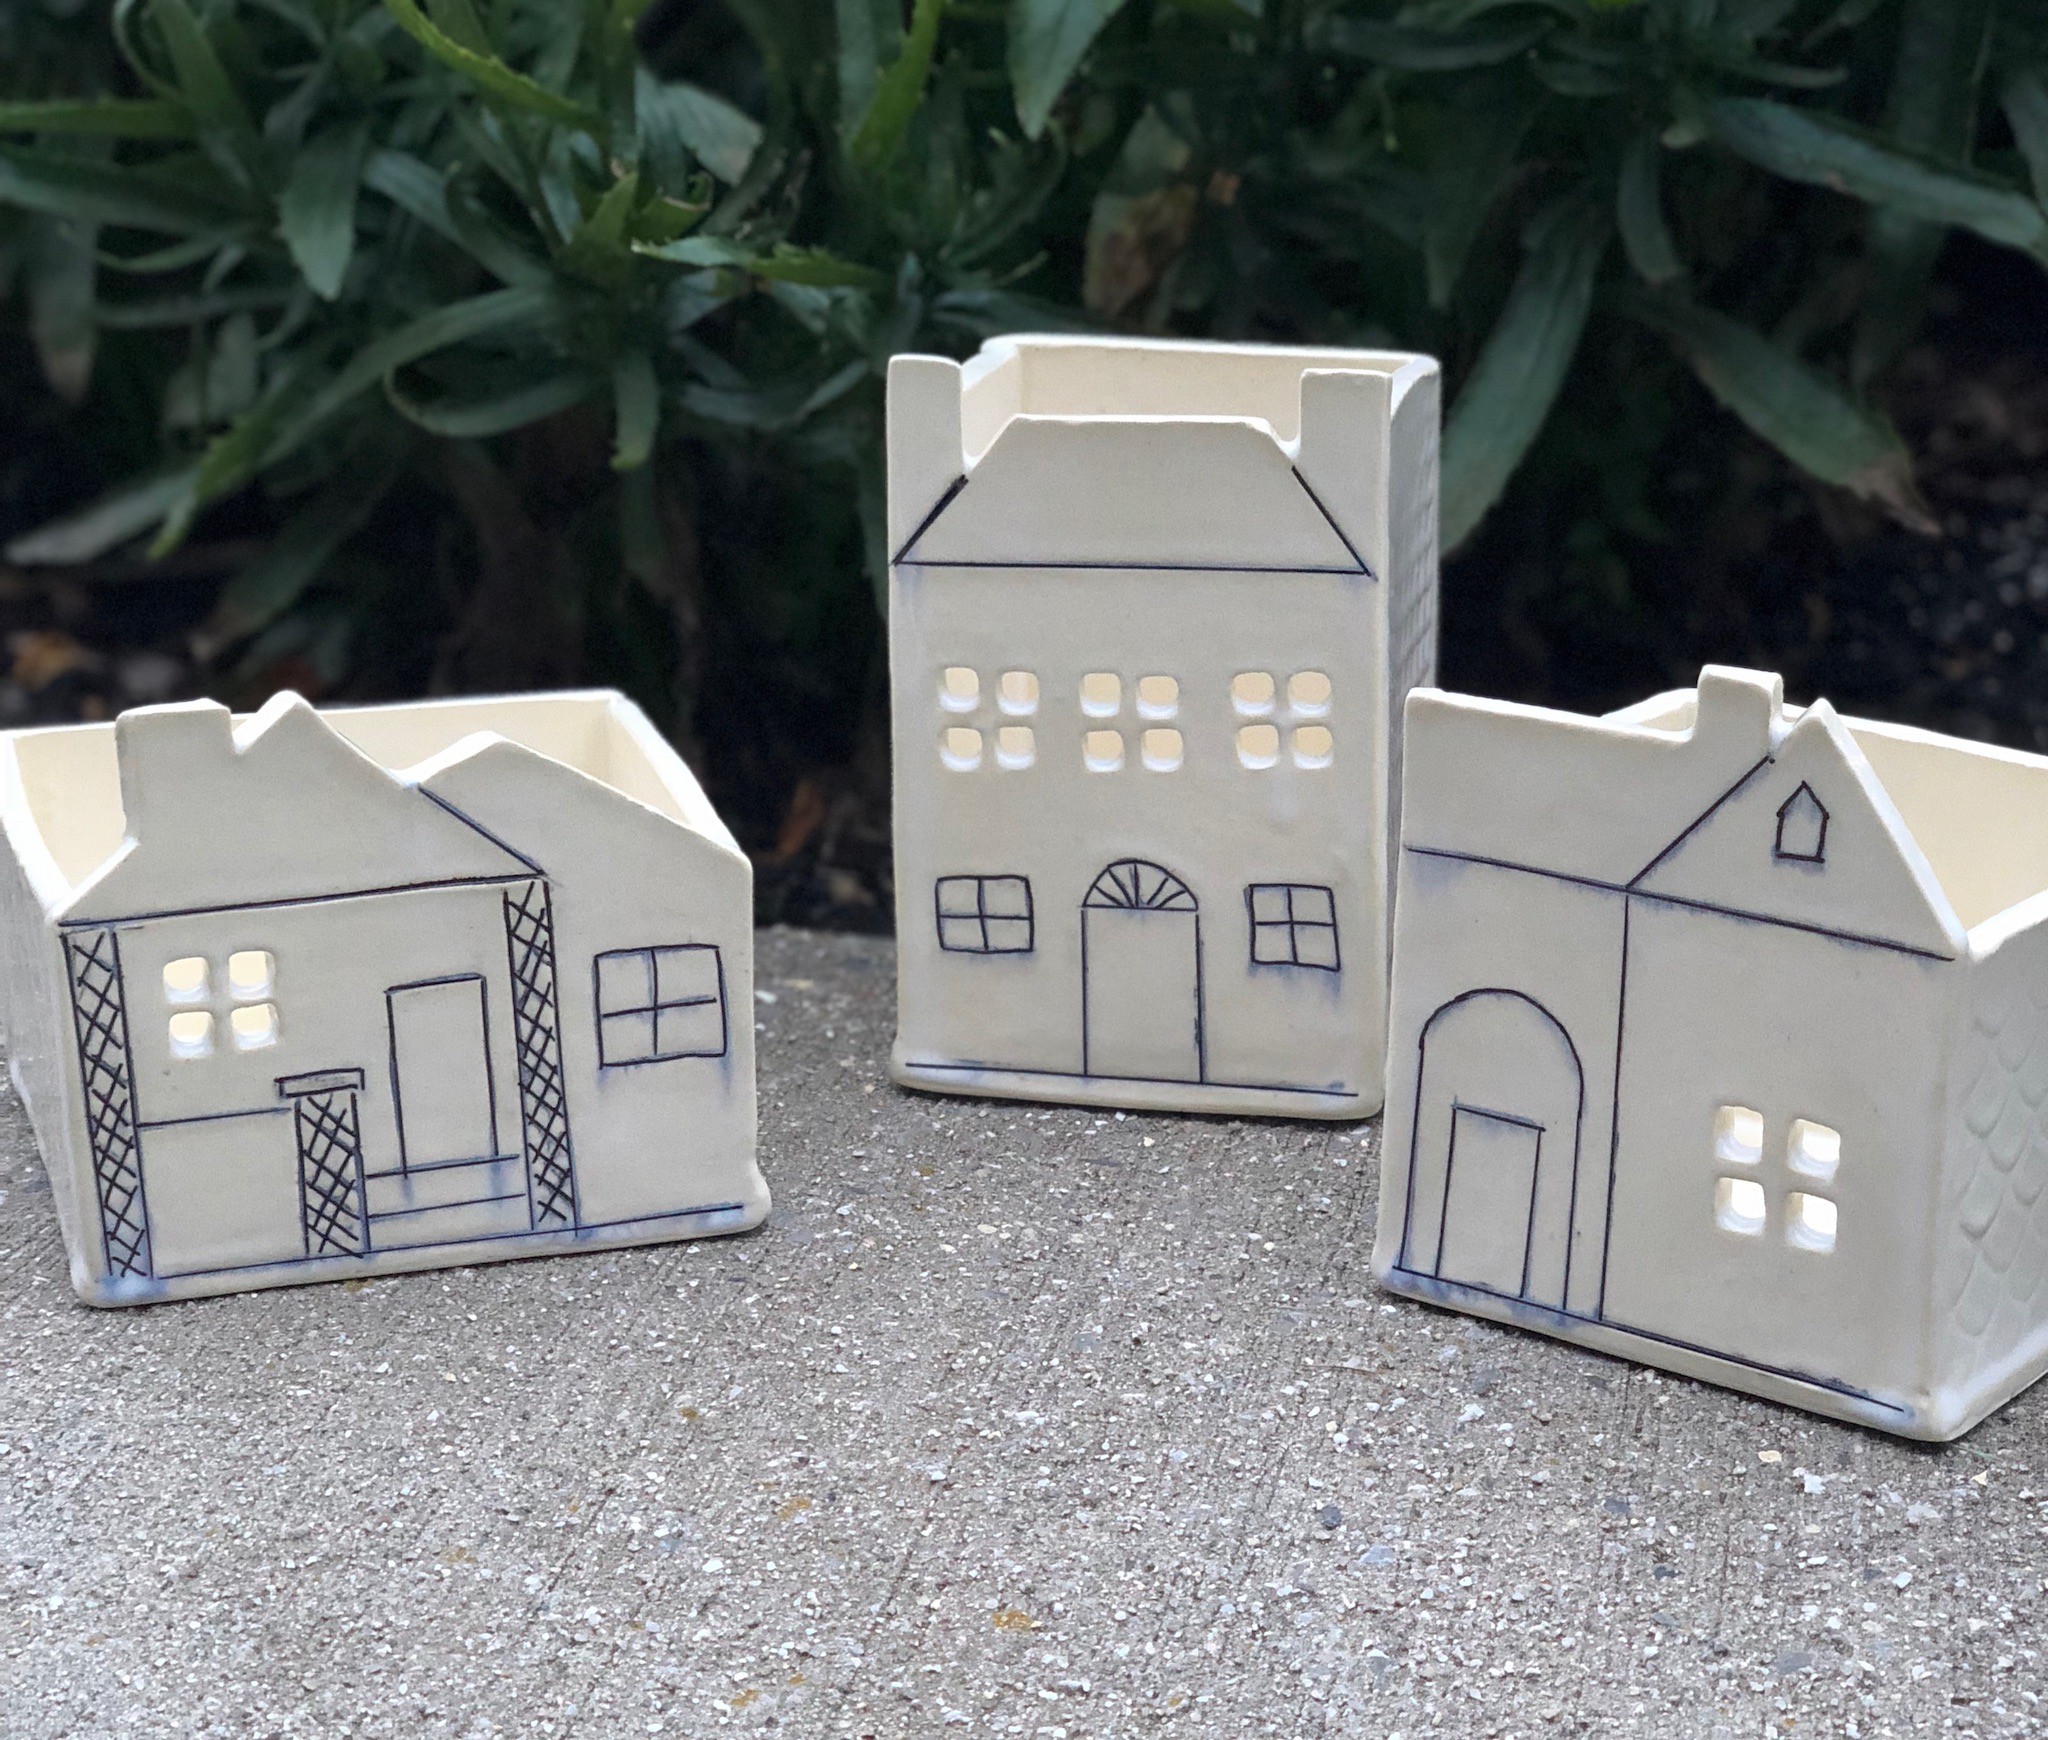 This little village of Historic Huntsville Homes are part of a custom collaboration I've created for Harrison Brothers Hardware in support of the Historic Huntsville Foundation.